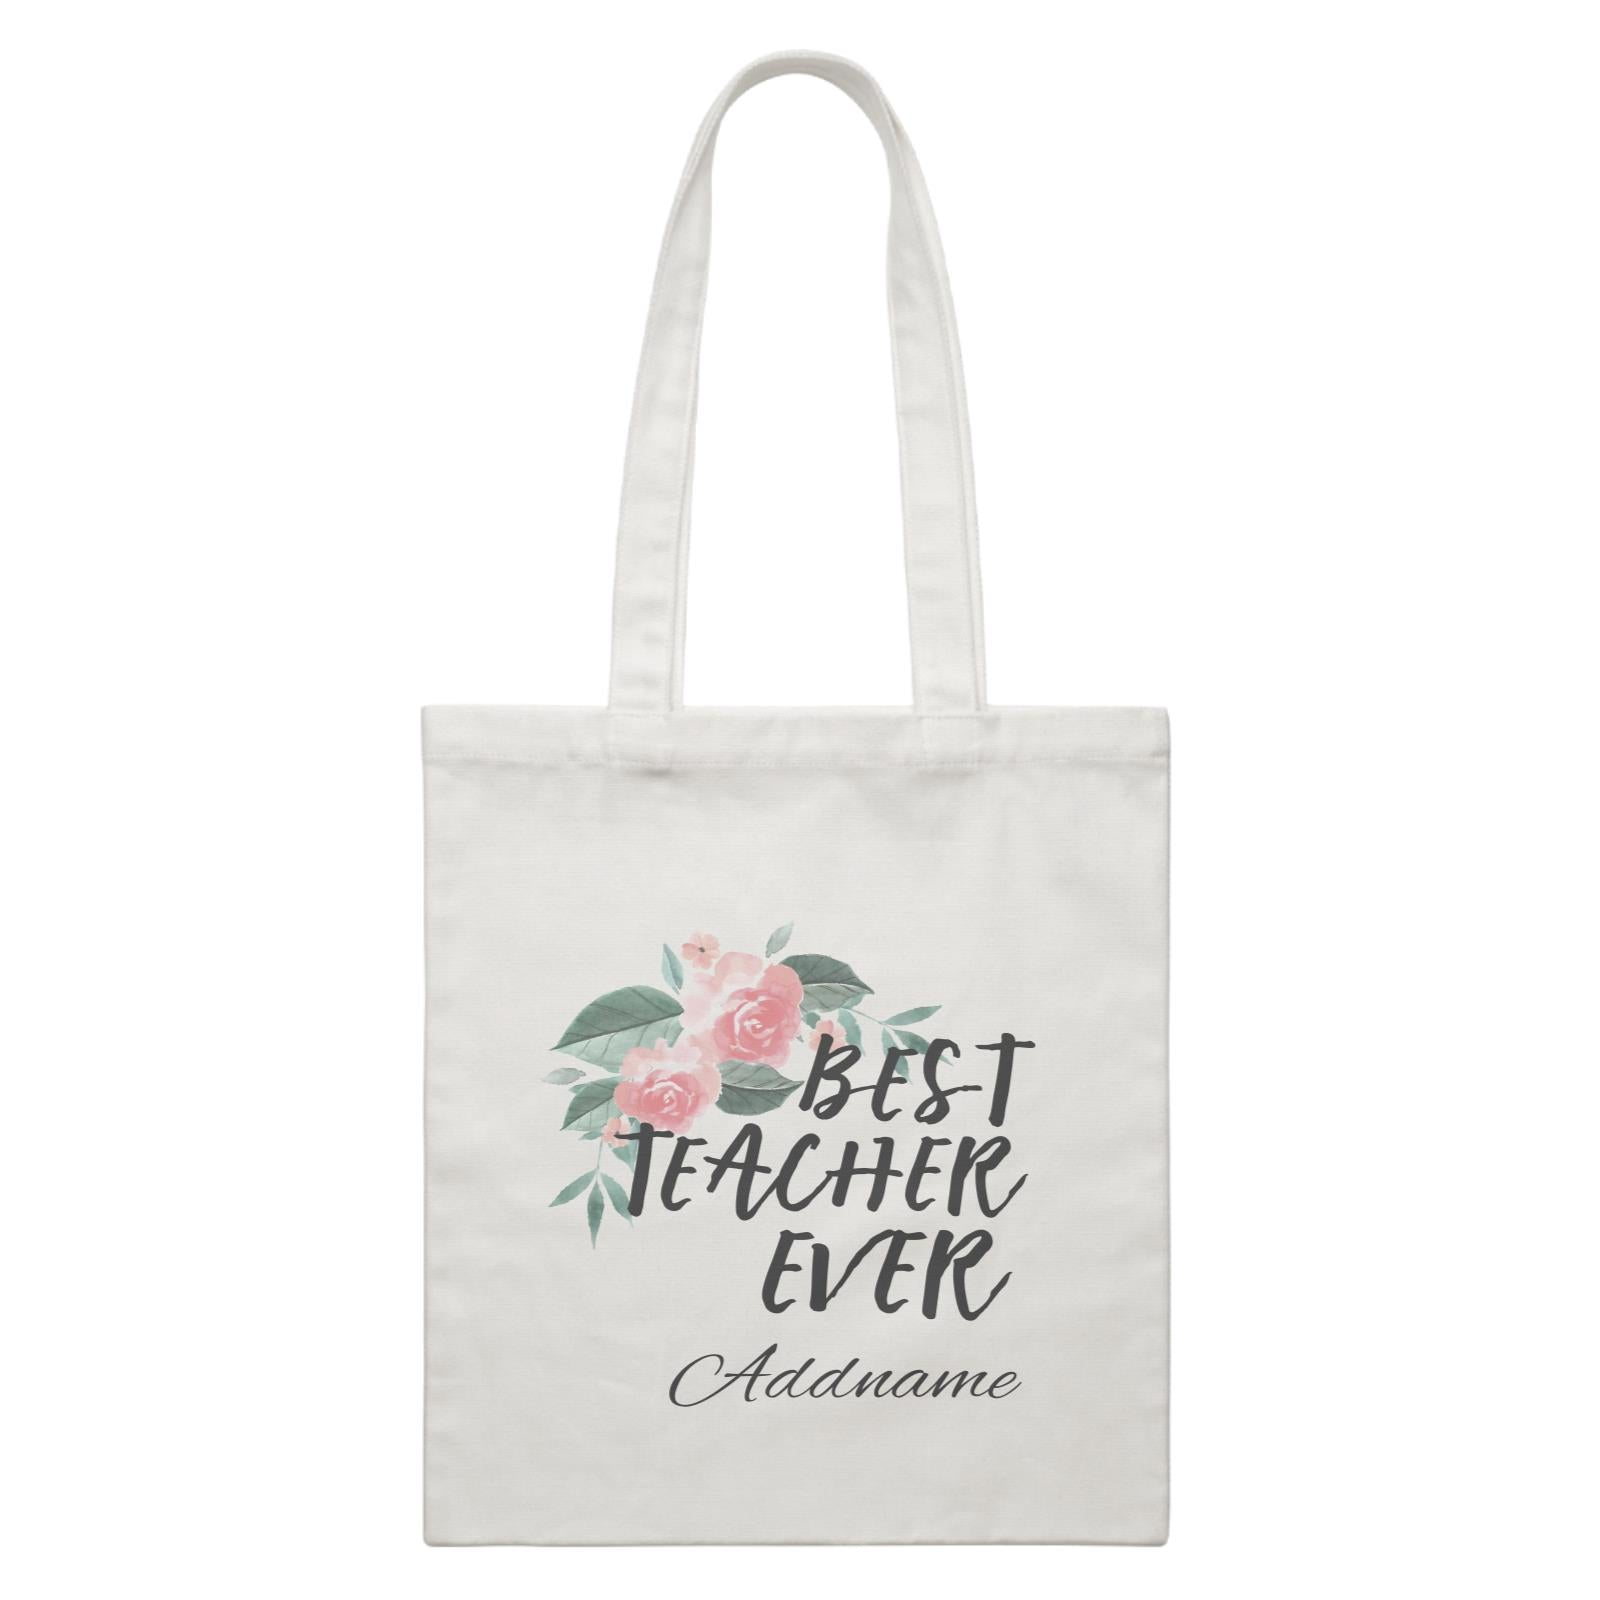 Great Teachers Watercolour Flowers Best Teacher Ever Addname White Canvas Bag